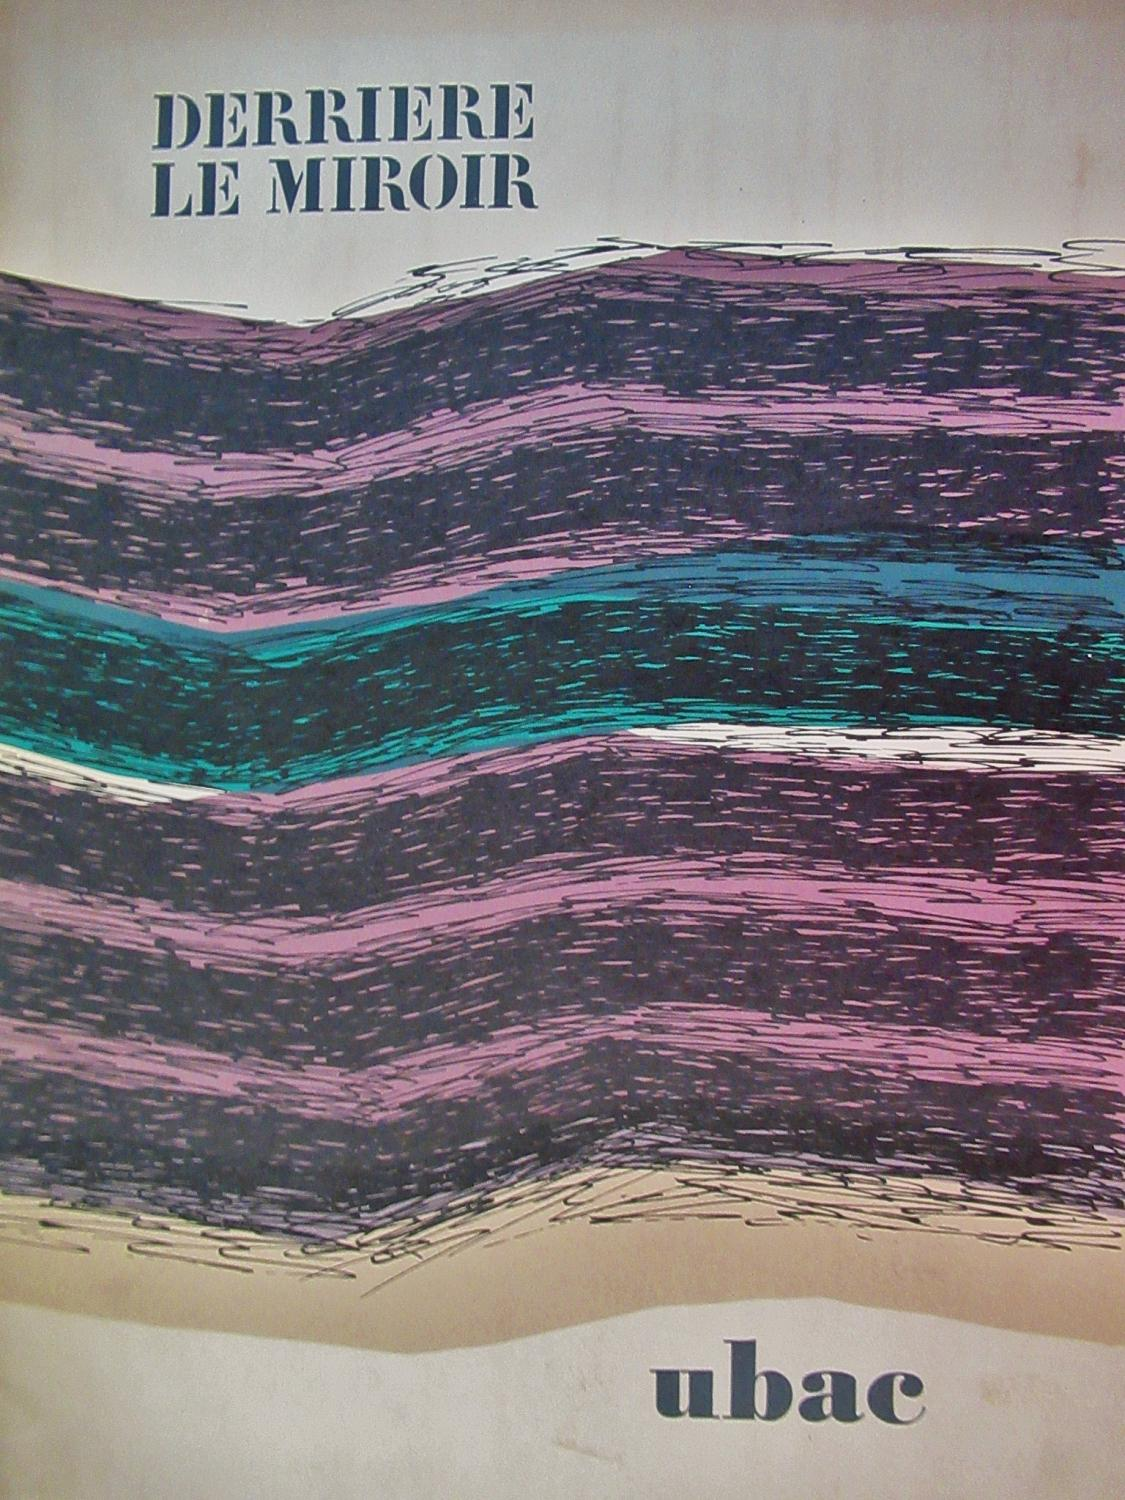 DERRIERE_LE_MIROIR_COVER_ONLY__ORIGINAL_LITHOGRAPH_1971_UBAC_Very_Good